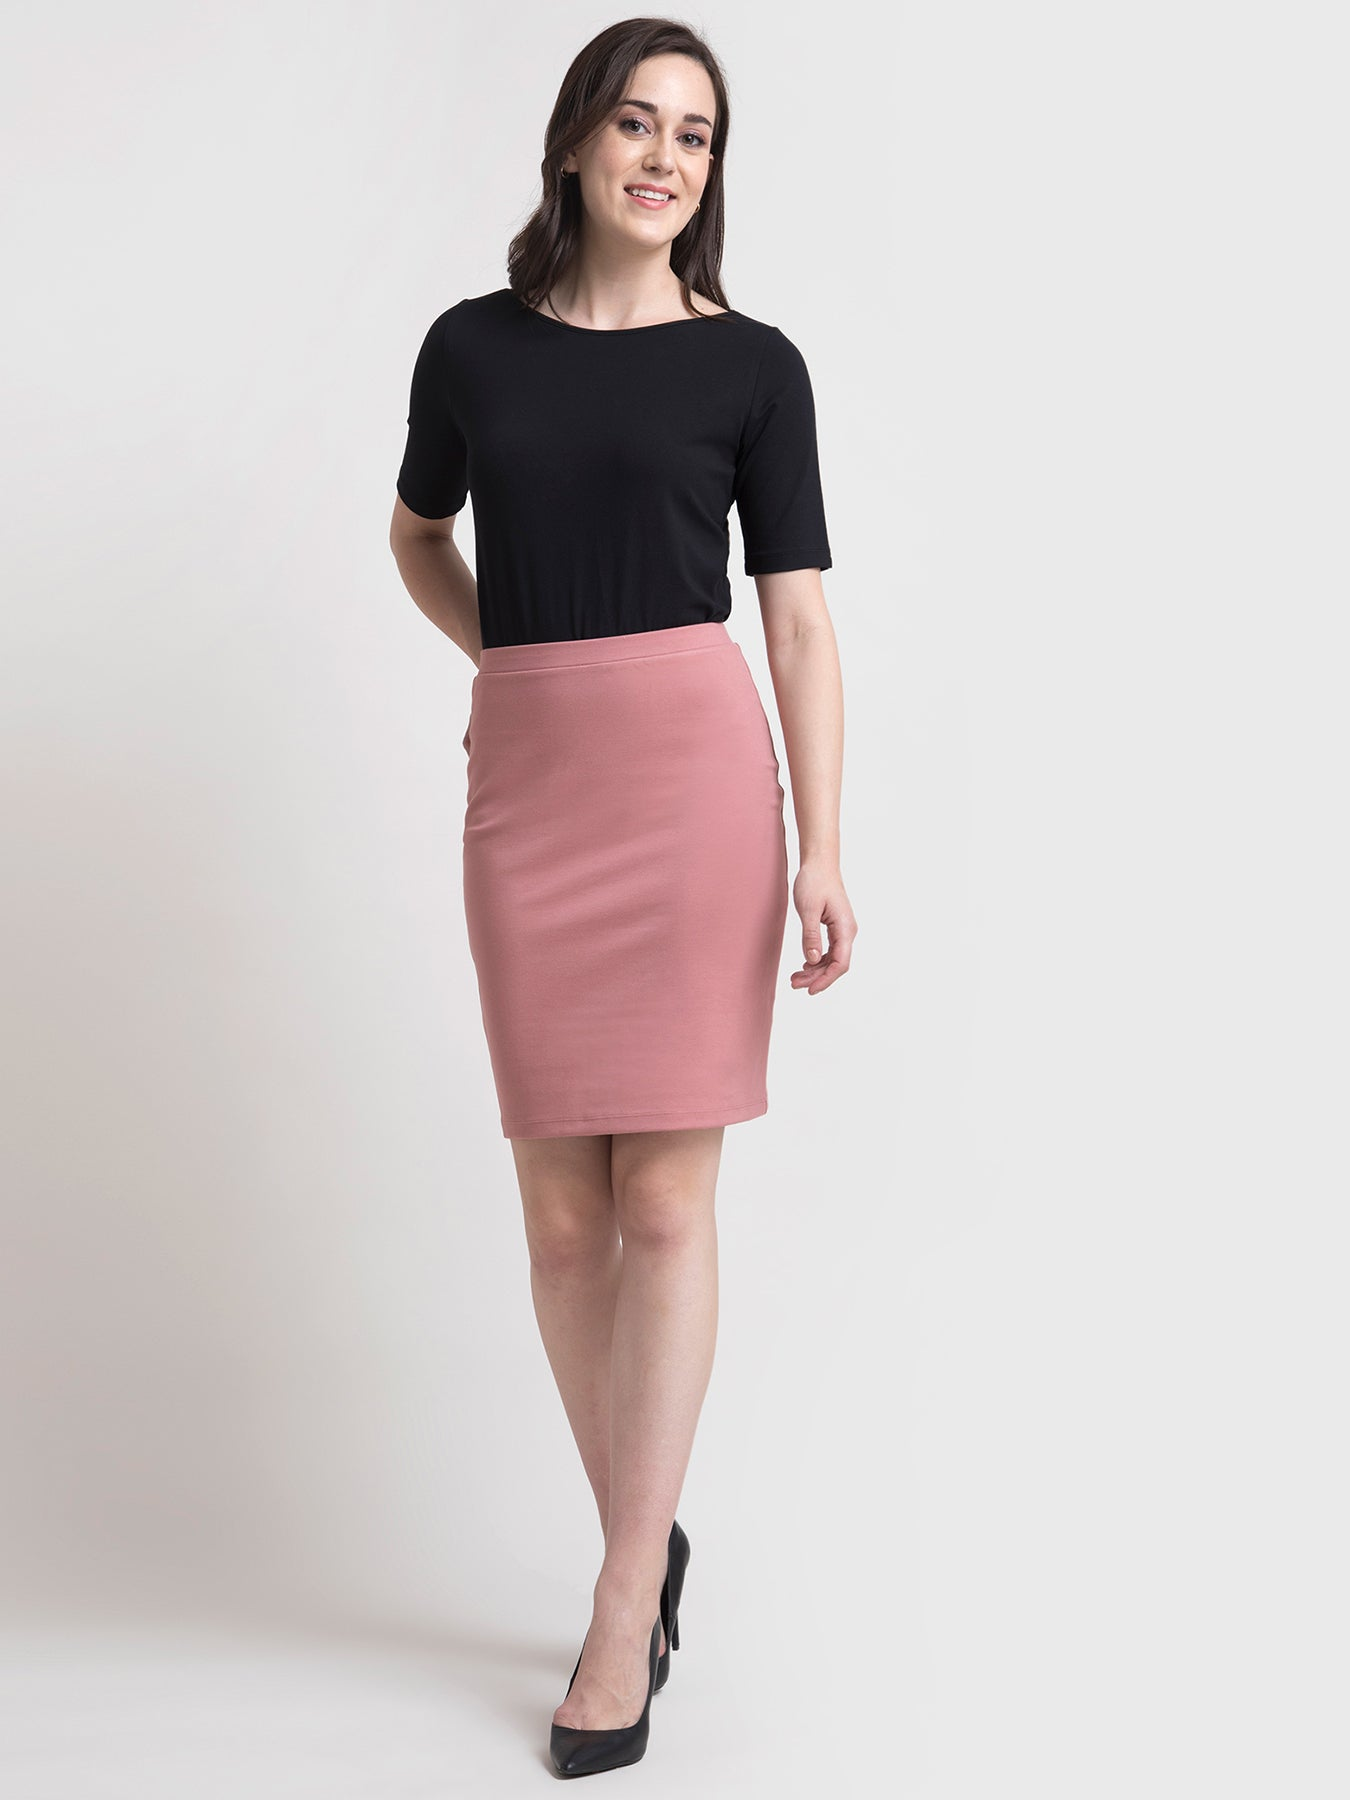 Elasticated Pencil LivIn Skirt - Pink